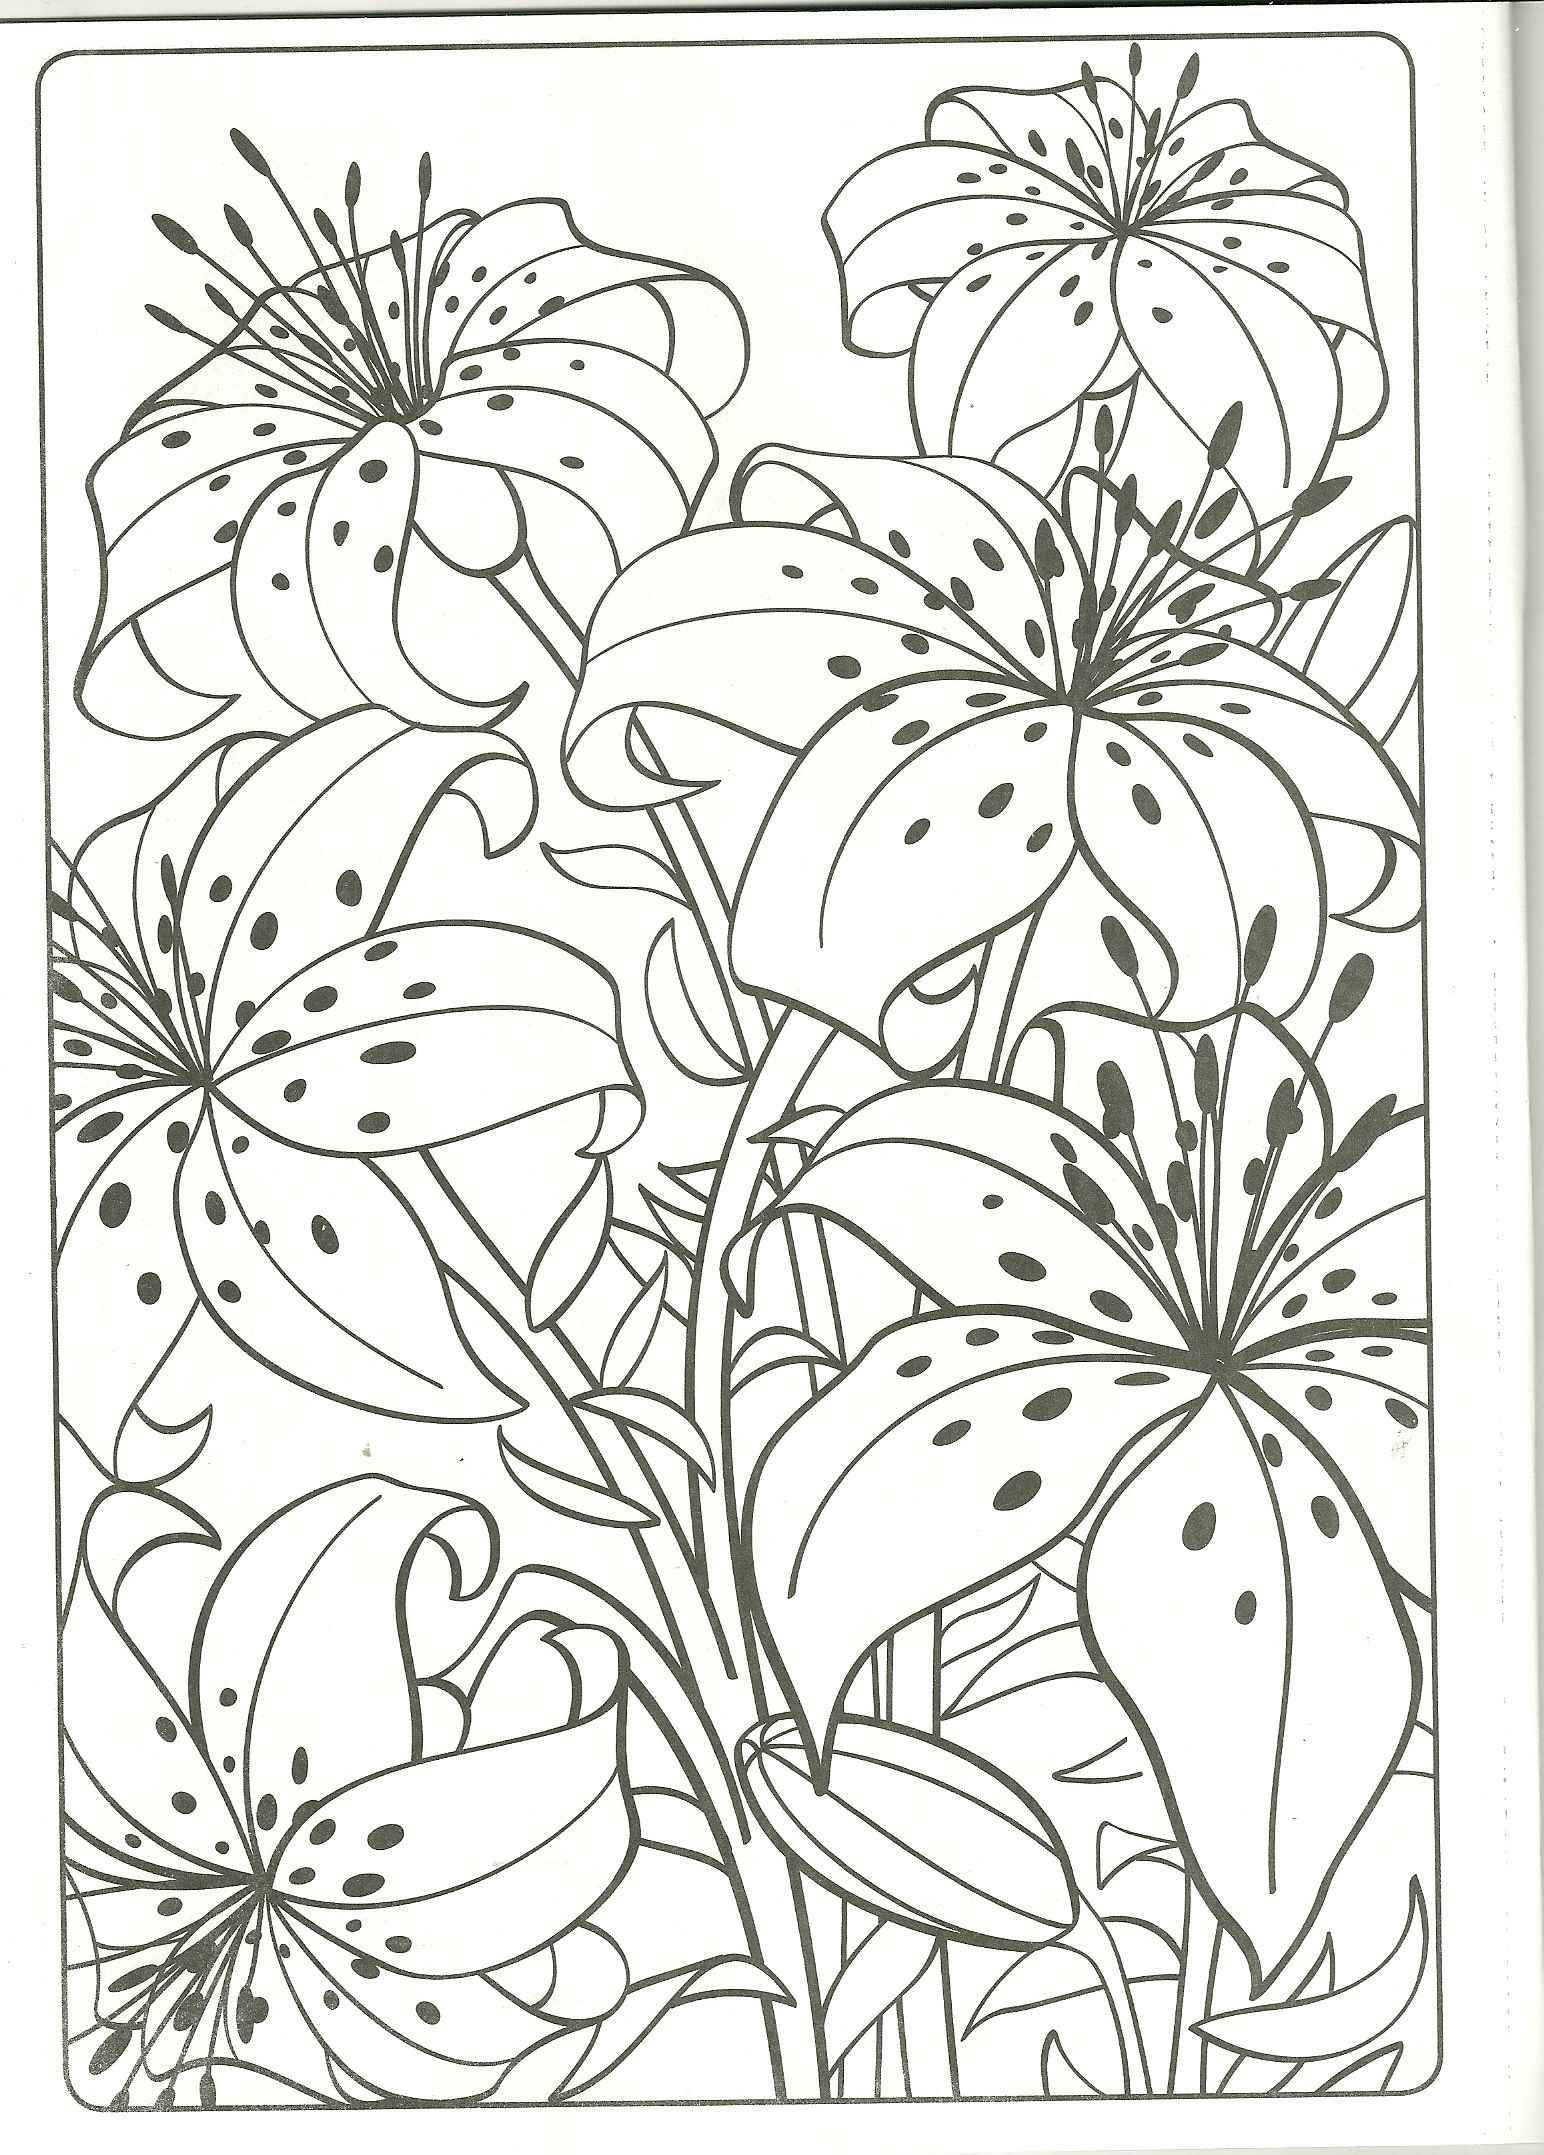 Tiger Lilly Coloring Page It S My Fave Flower Tiger Lily